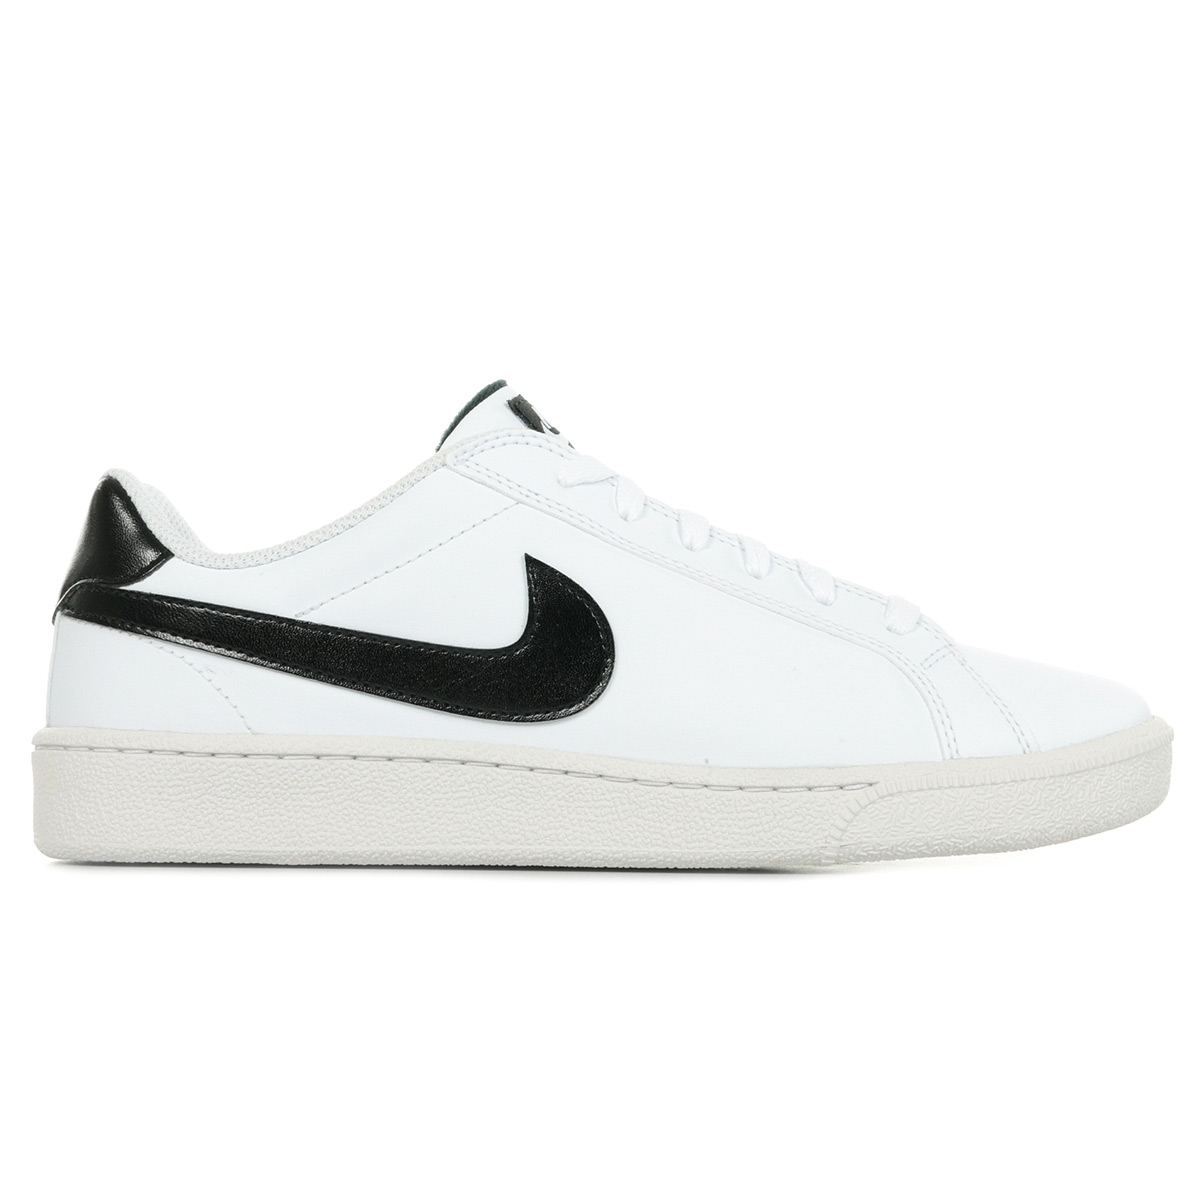 Nike Cout Majestic Leather 574236100, Baskets mode homme